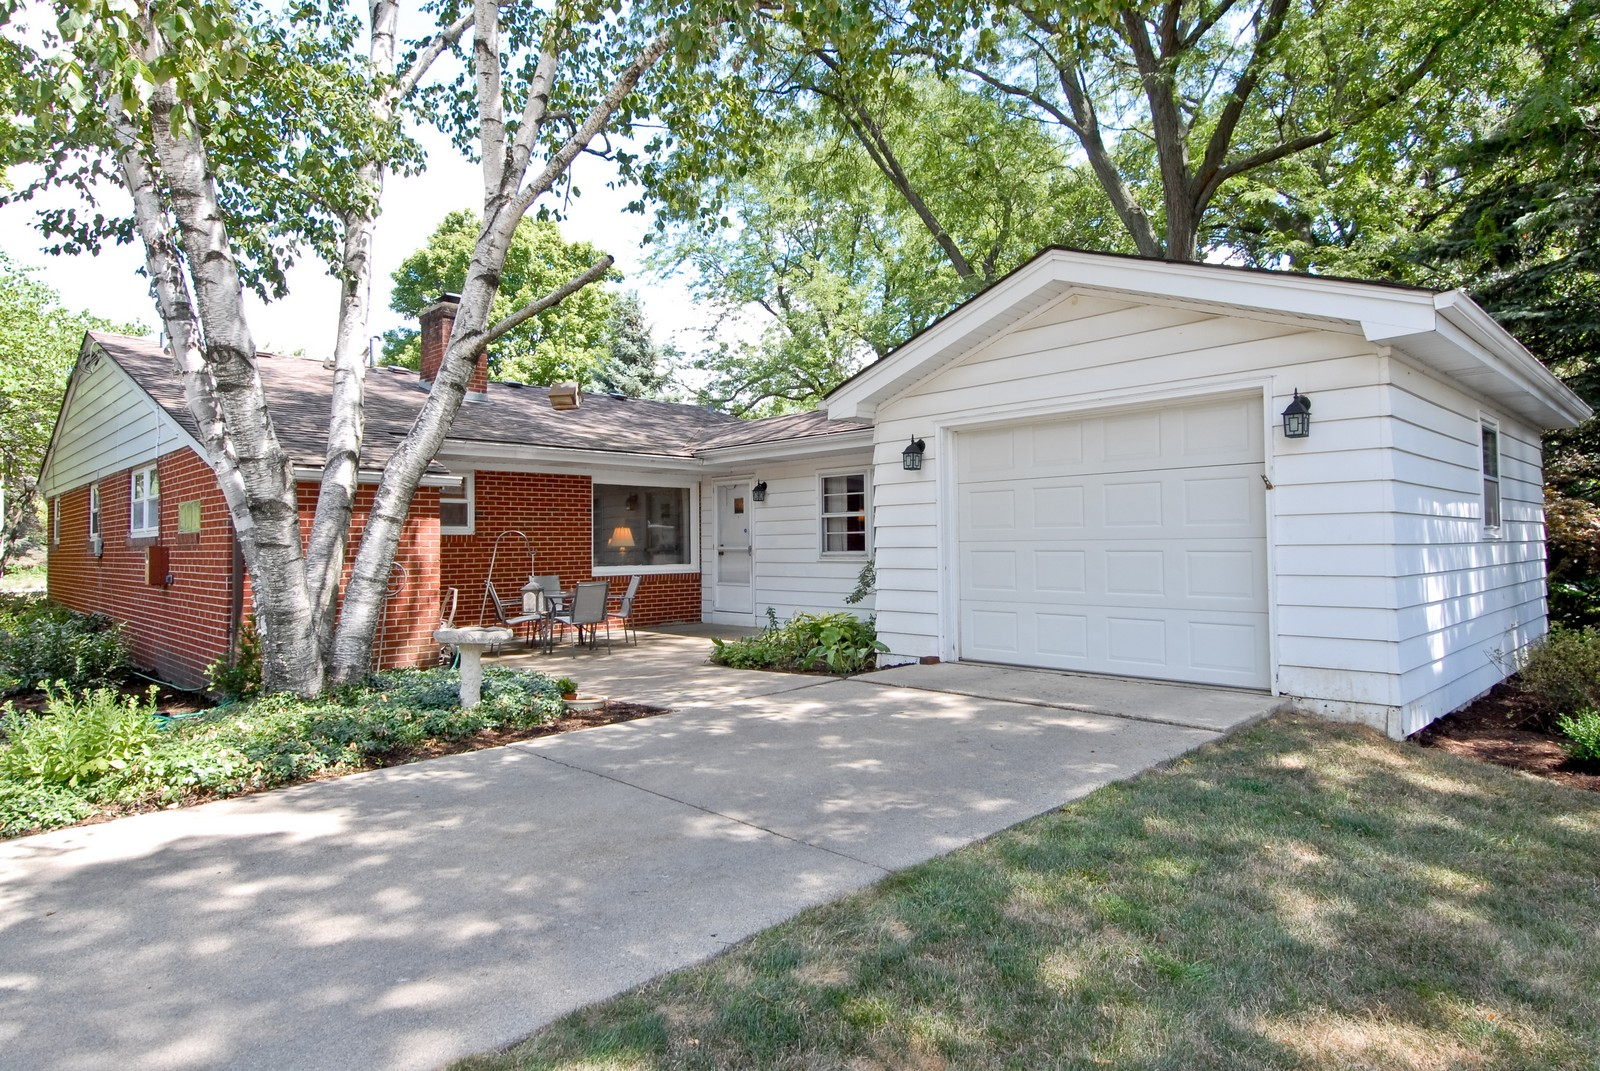 Real Estate Photography - 525 S McKinley St, St Charles, IL, 60174 - Side View